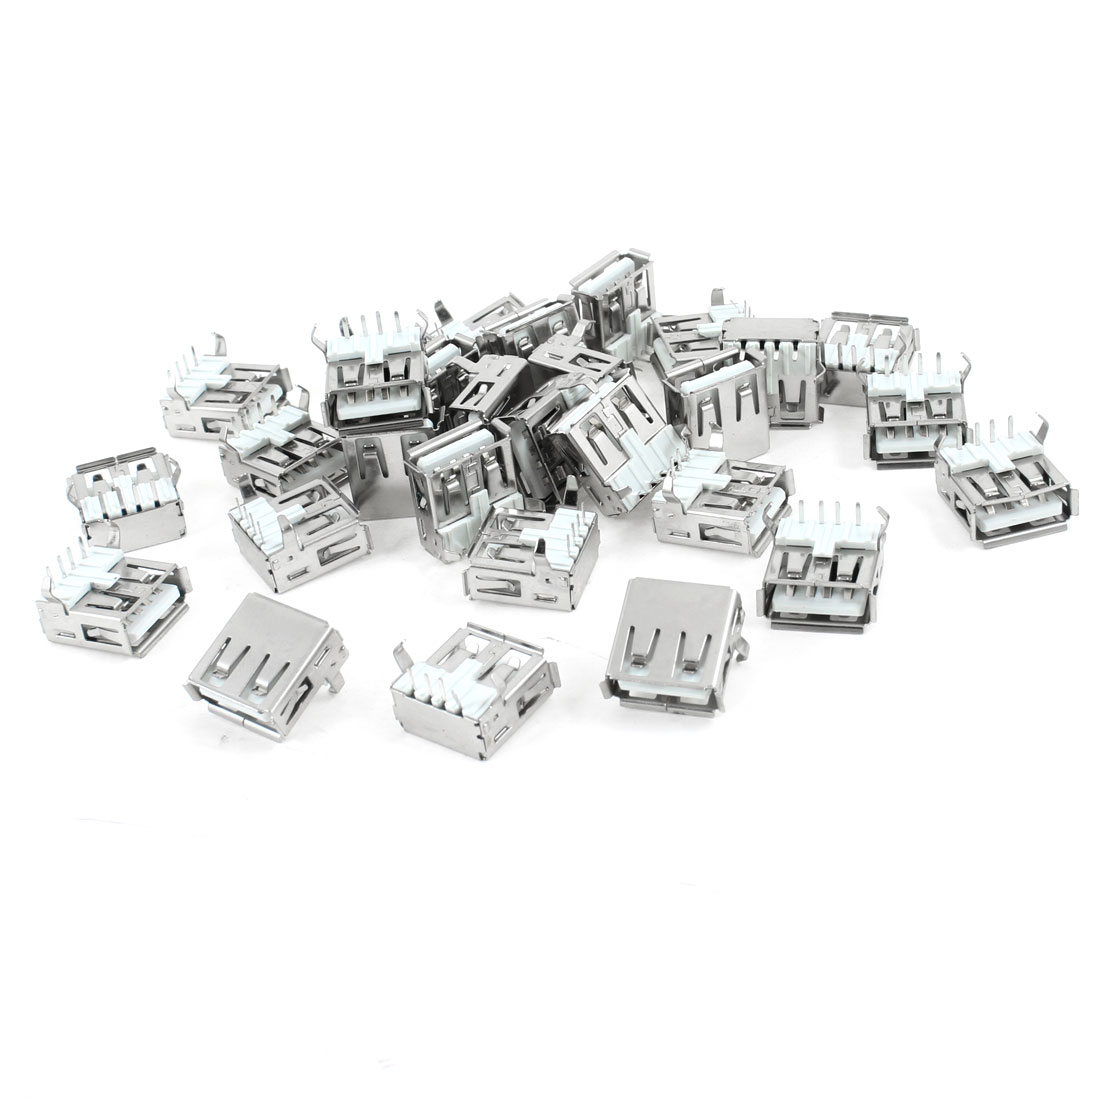 30 Pcs Single USB 2.0 Type A Right Angle 4-Pin DIP Female Jack Socket